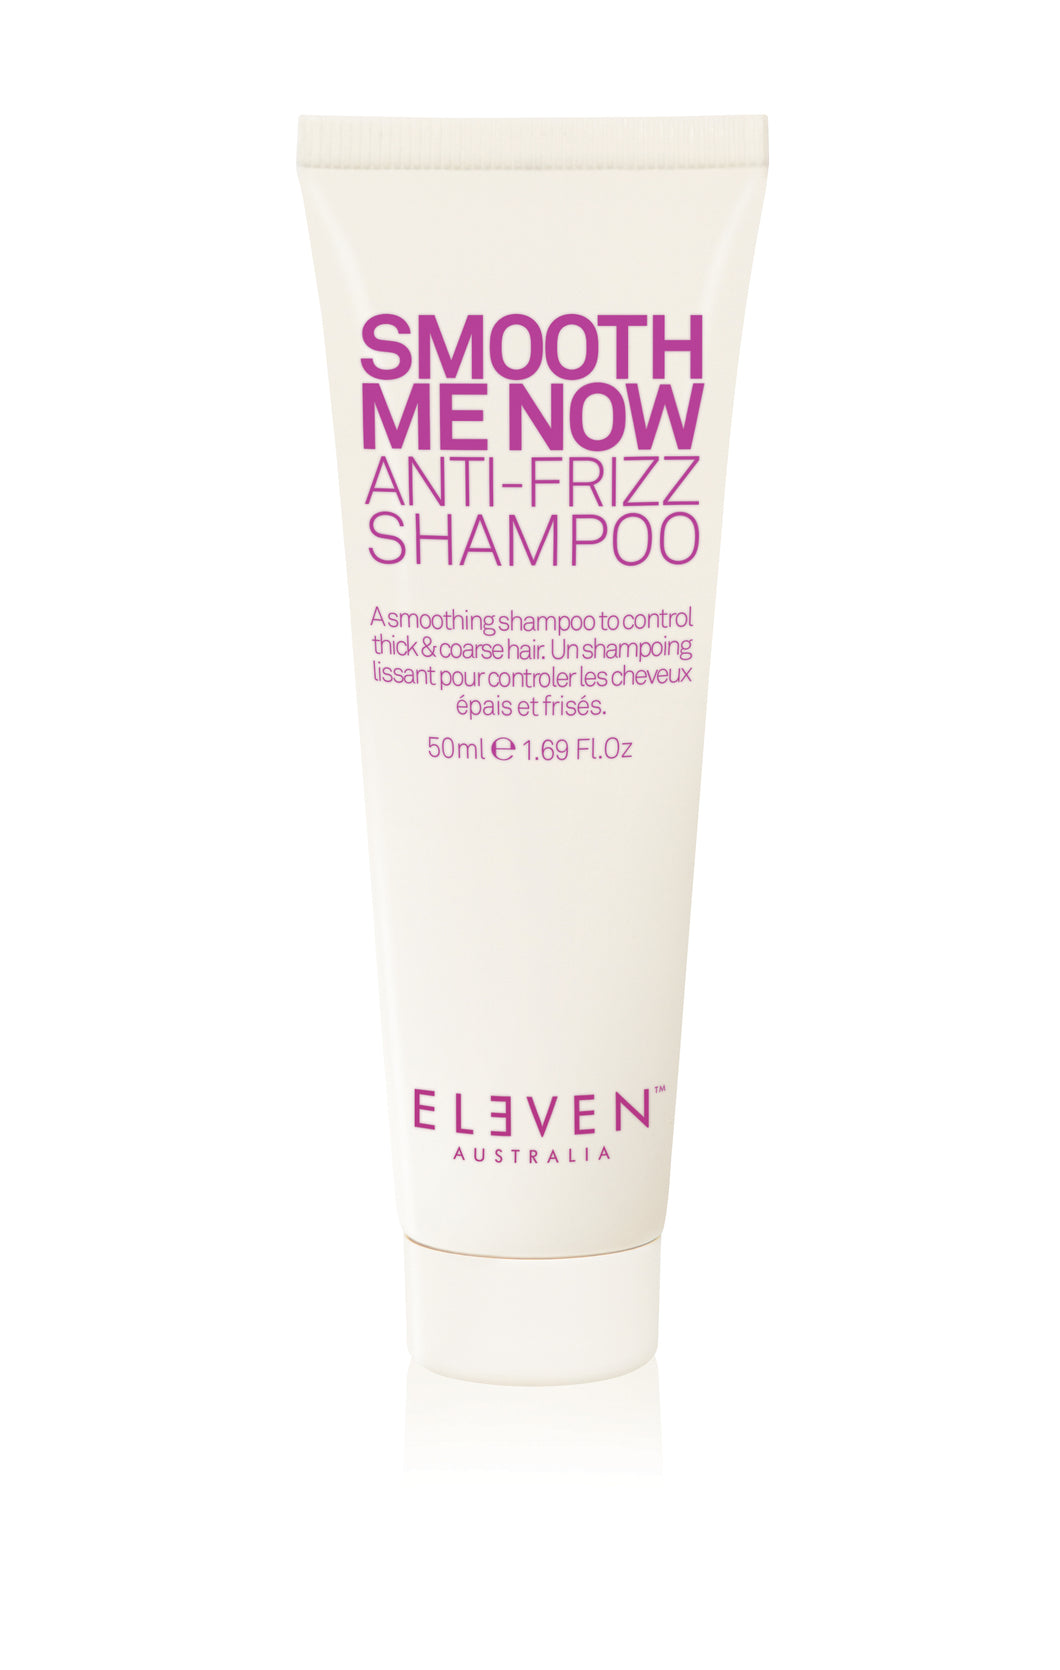 Smooth Me Now Anti-Frizz Shampoo 50ml